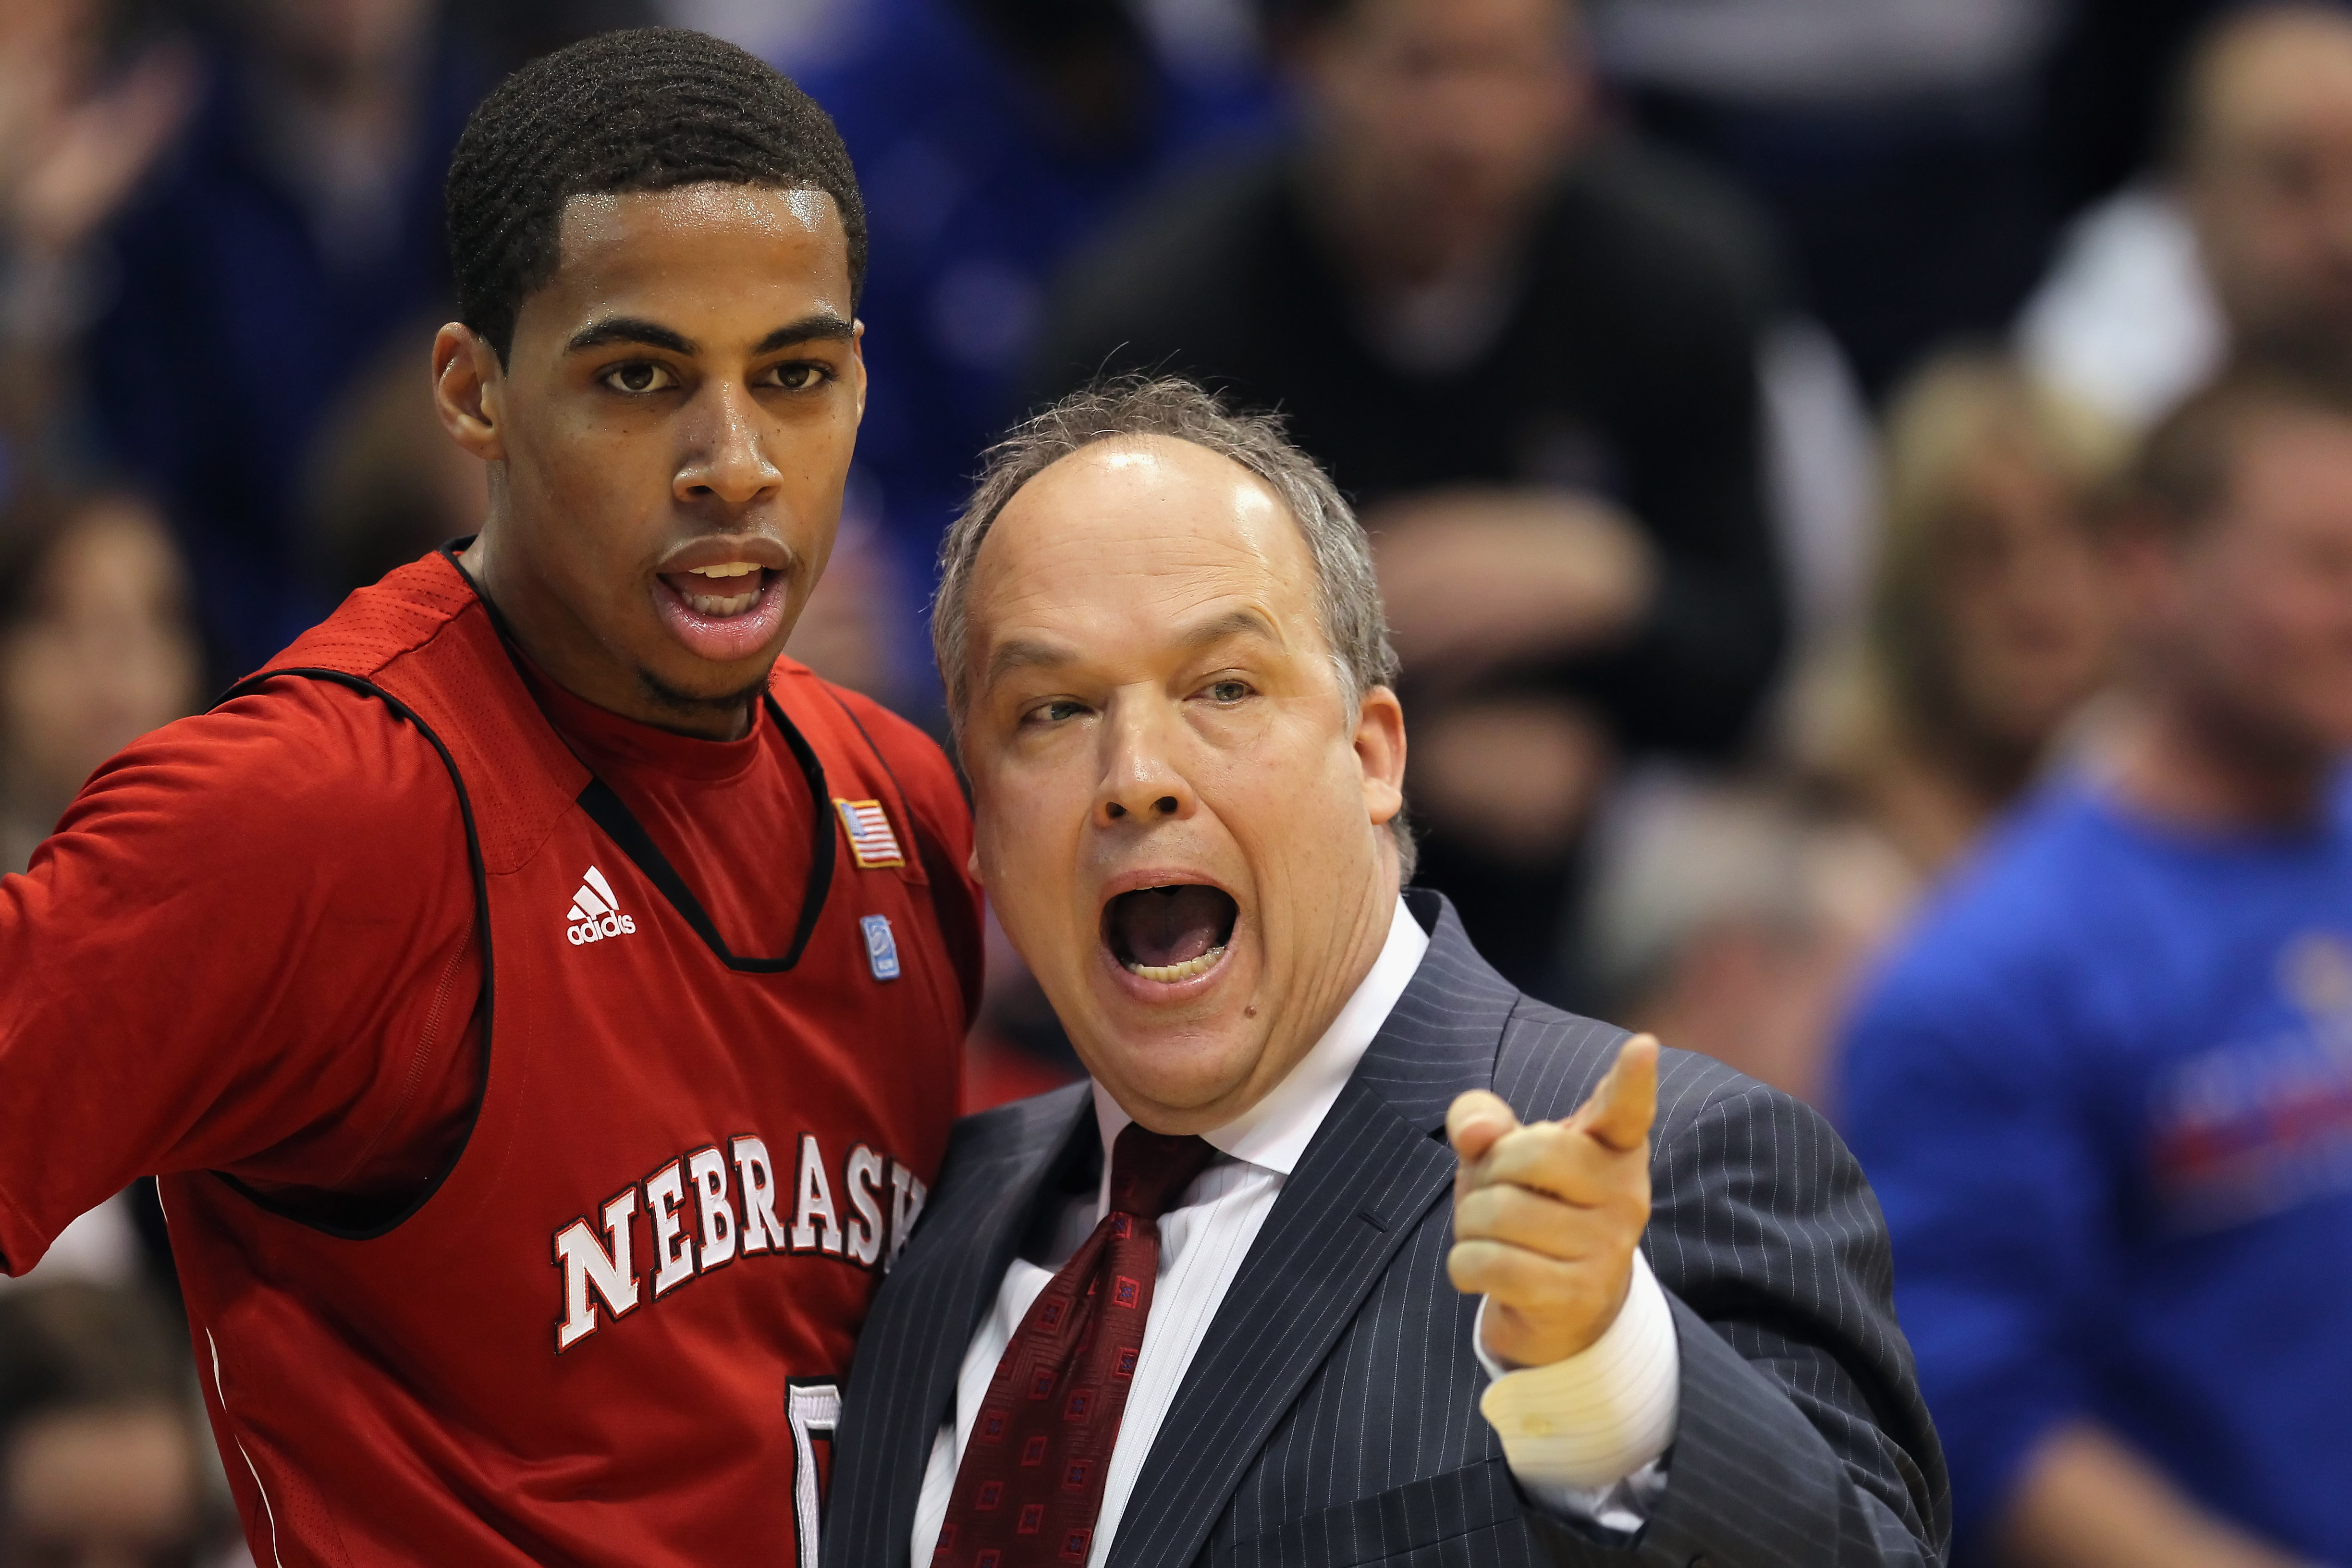 LAWRENCE, KS - JANUARY 15:  Head coach Doc Sadler of the Nebraska Cornhuskers instructs Toney McCray #0 during the game against the Kansas Jayhawks on January 15, 2011 at Allen Fieldhouse in Lawrence, Kansas.  (Photo by Jamie Squire/Getty Images)